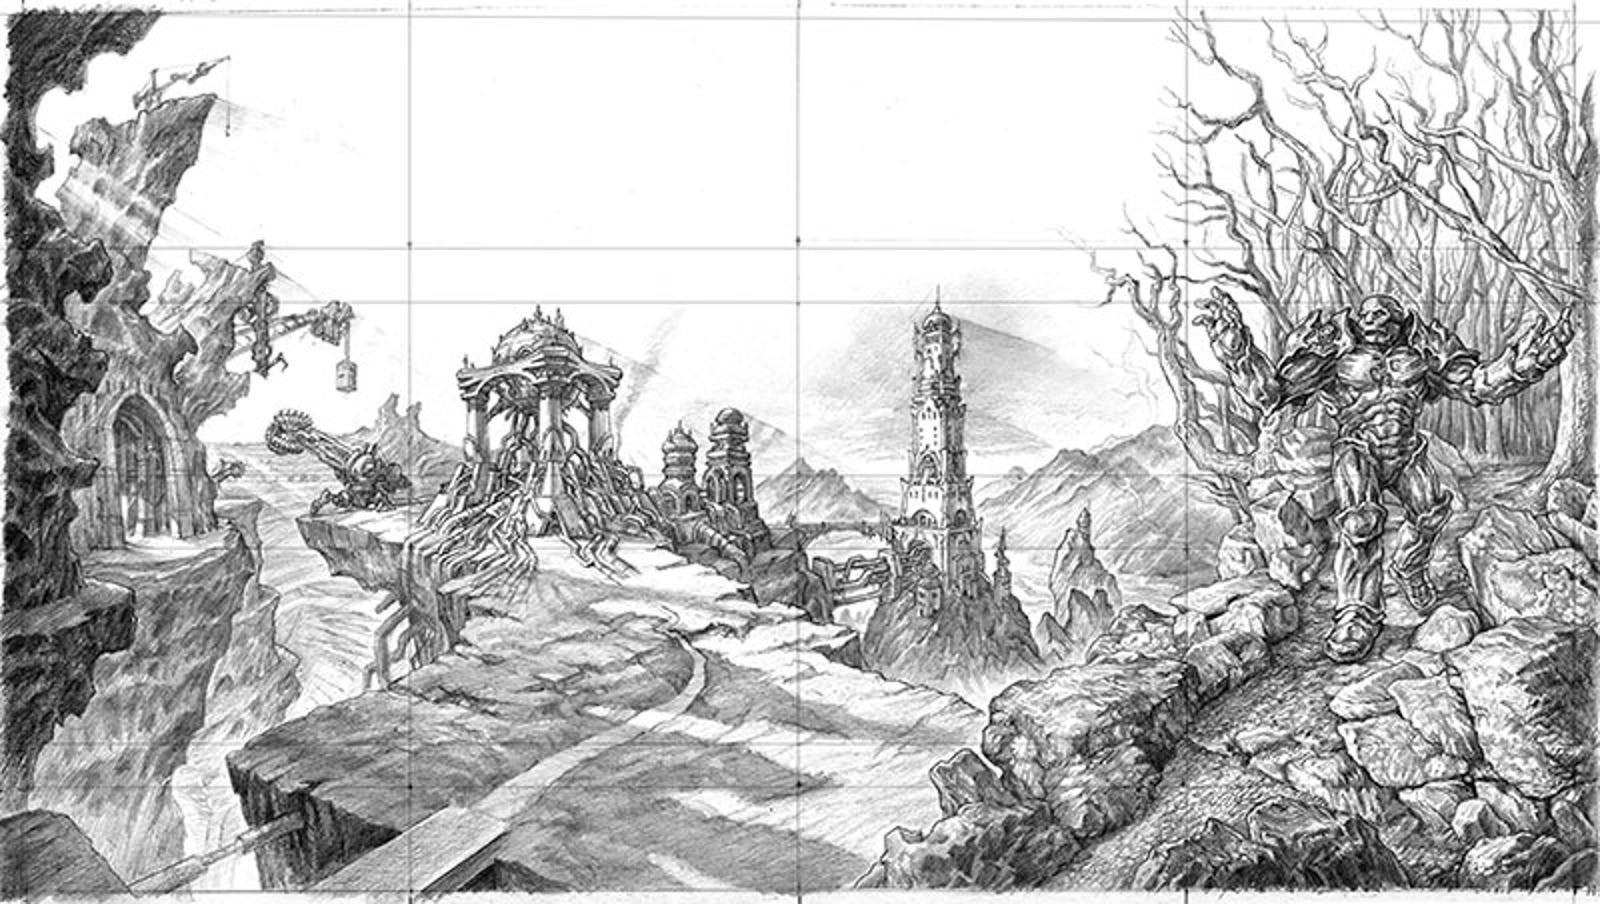 Mark Tedin's original sketches for a panorama across four cards: Urza's Mine, Urza's Power Plant, Urza's Tower, and Karn Liberated...